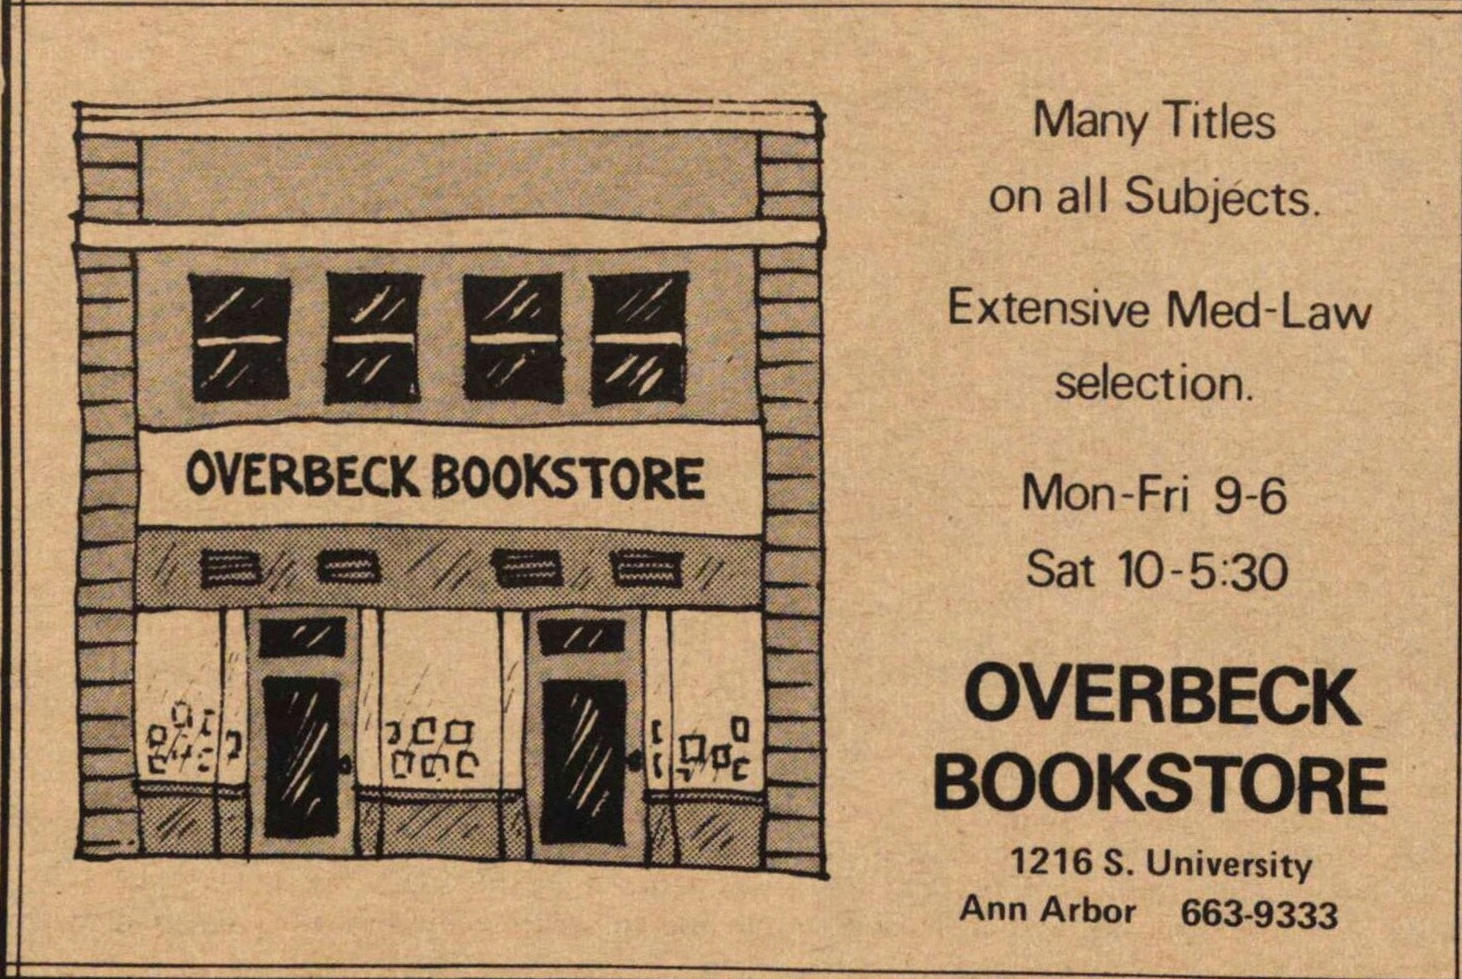 Overbeck Bookstore image